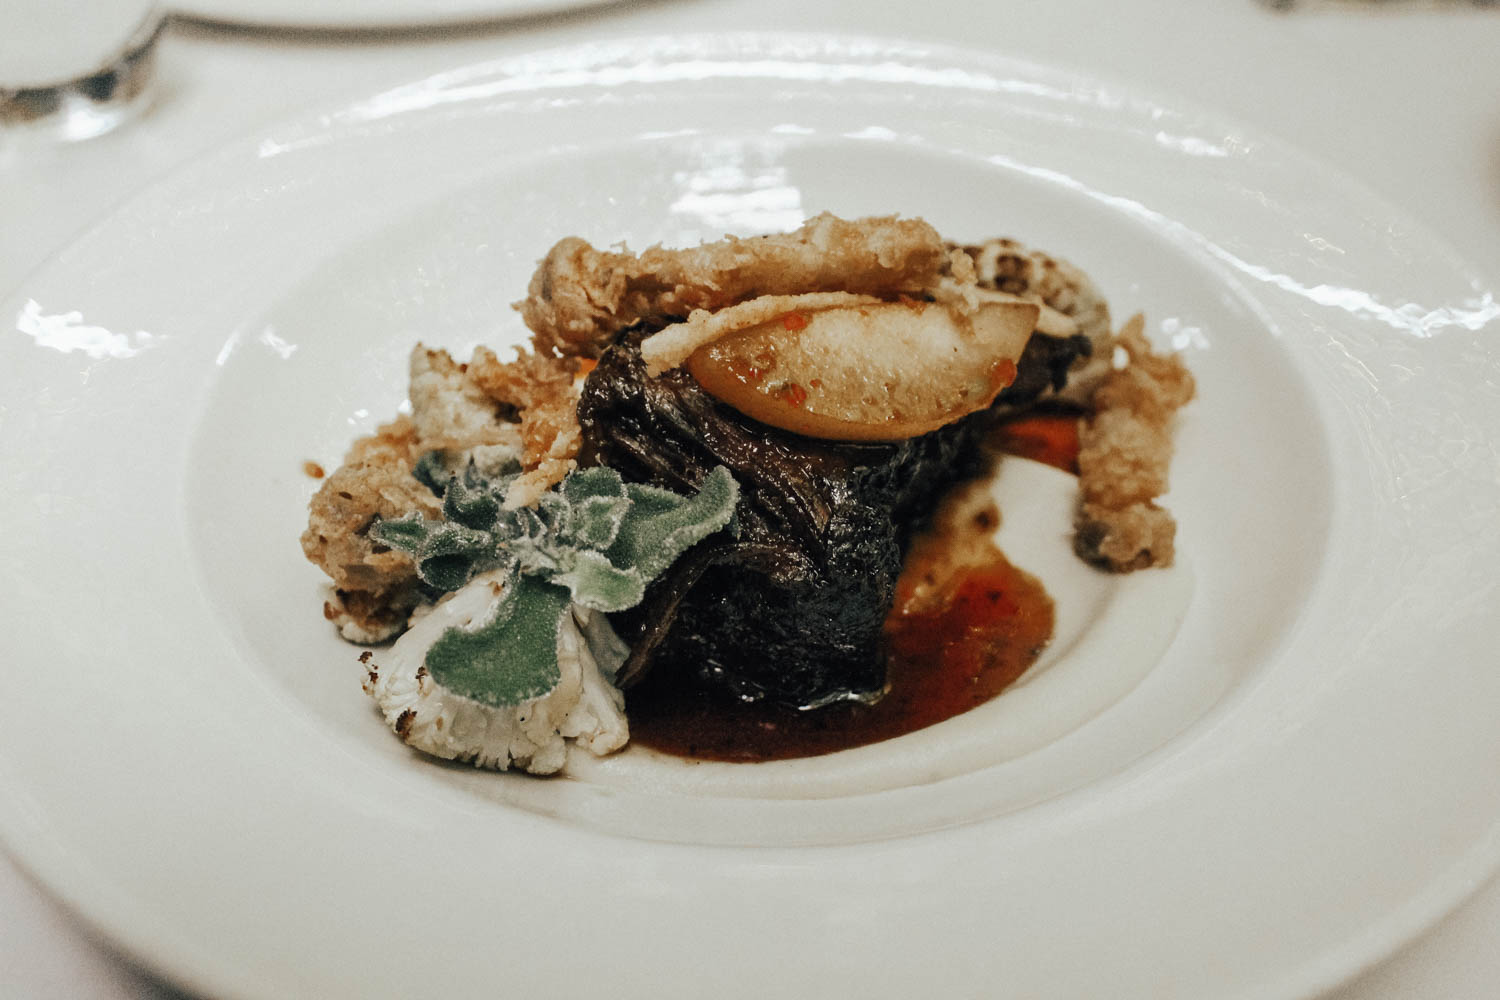 travel-guide-san-diego-recommendations-parq-restaurant11